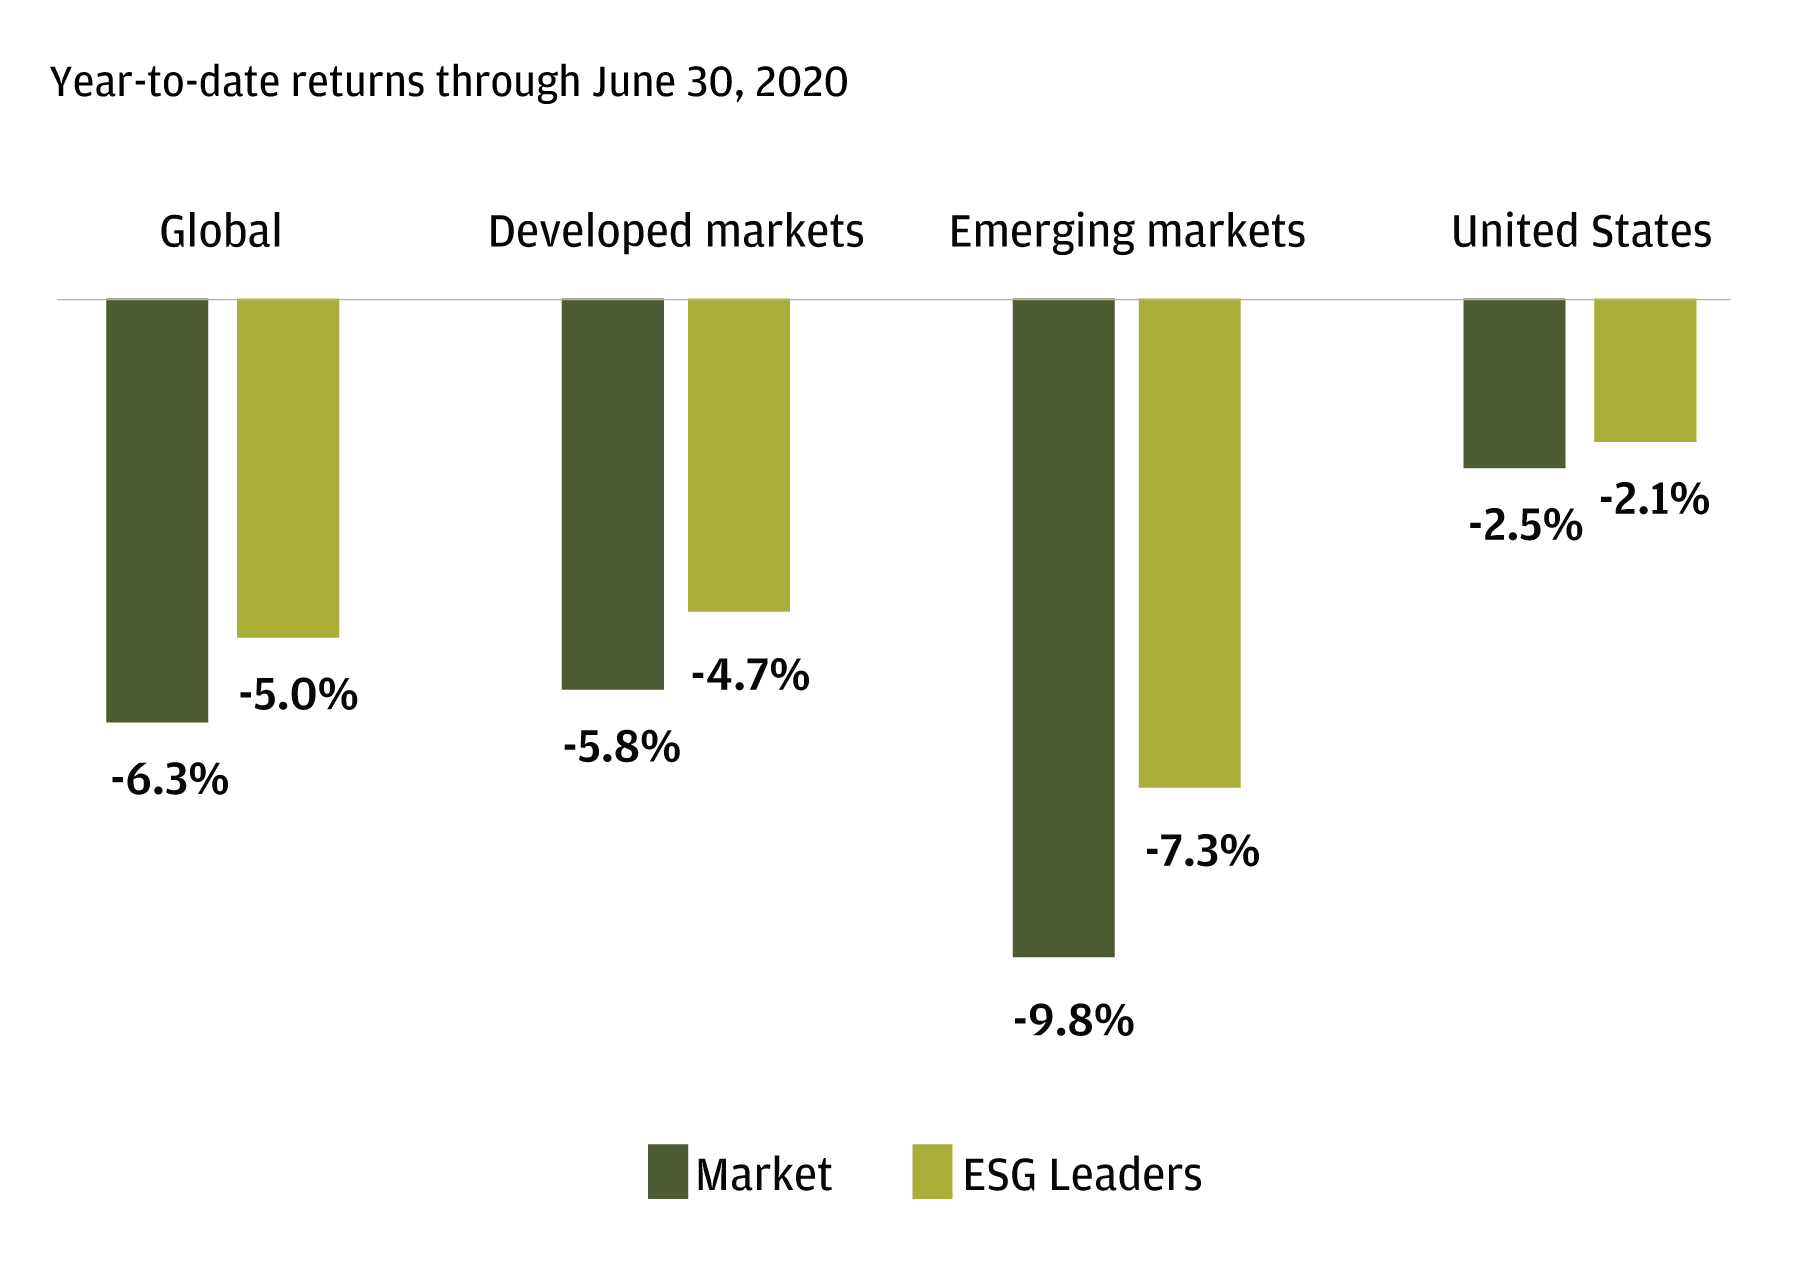 The chart shows year-to-date returns through June 20, 2020, of various equity indices, representing global markets, developed markets, emerging markets and the U.S. market. The chart shows that ESG Leaders Indices have outperformed the traditional broader market indices in all four markets represented.